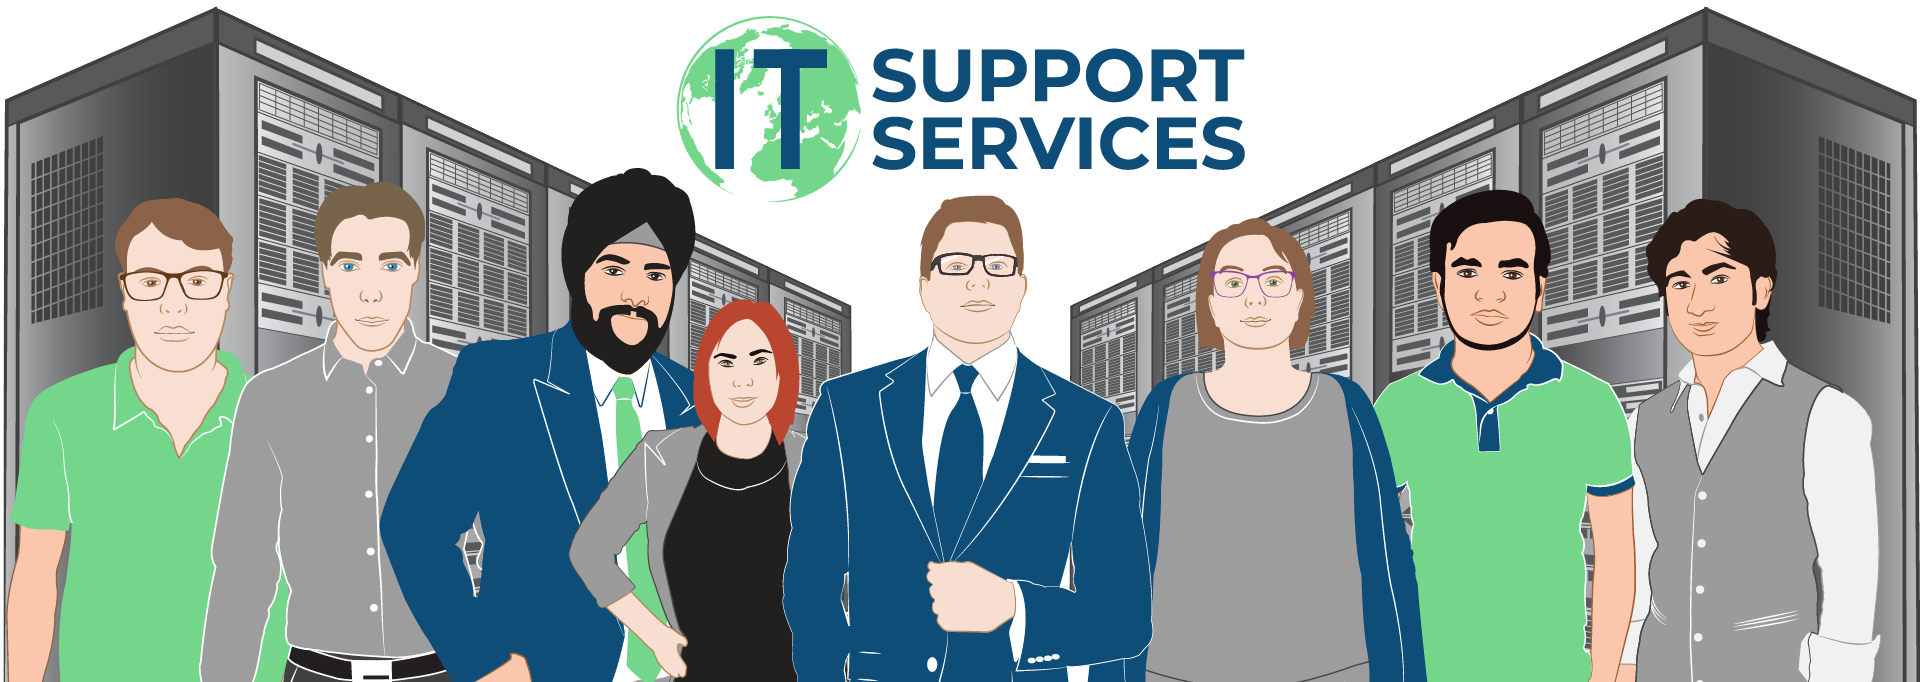 IT Support Services Team